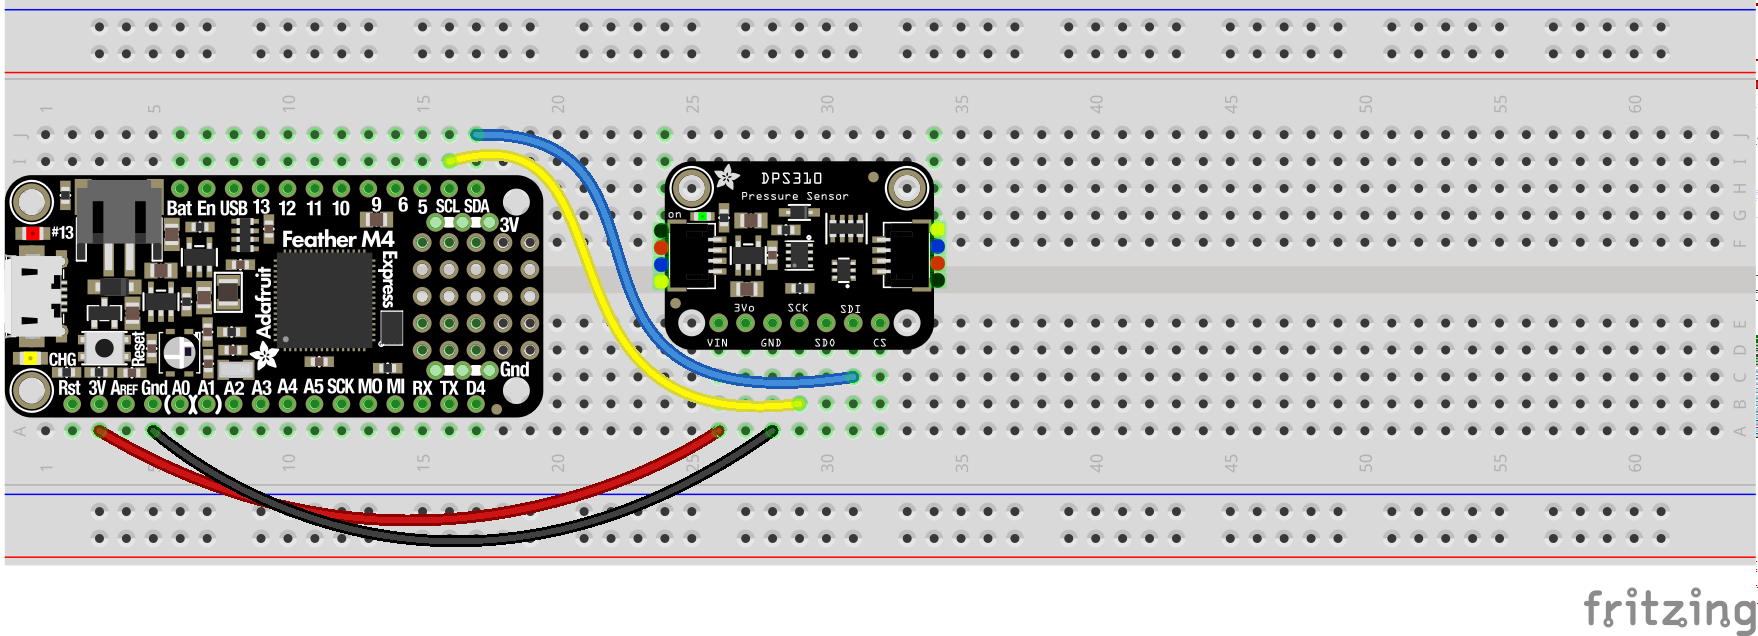 sensors_DPS310_FeatherM4_I2C_breadboard_bb.png